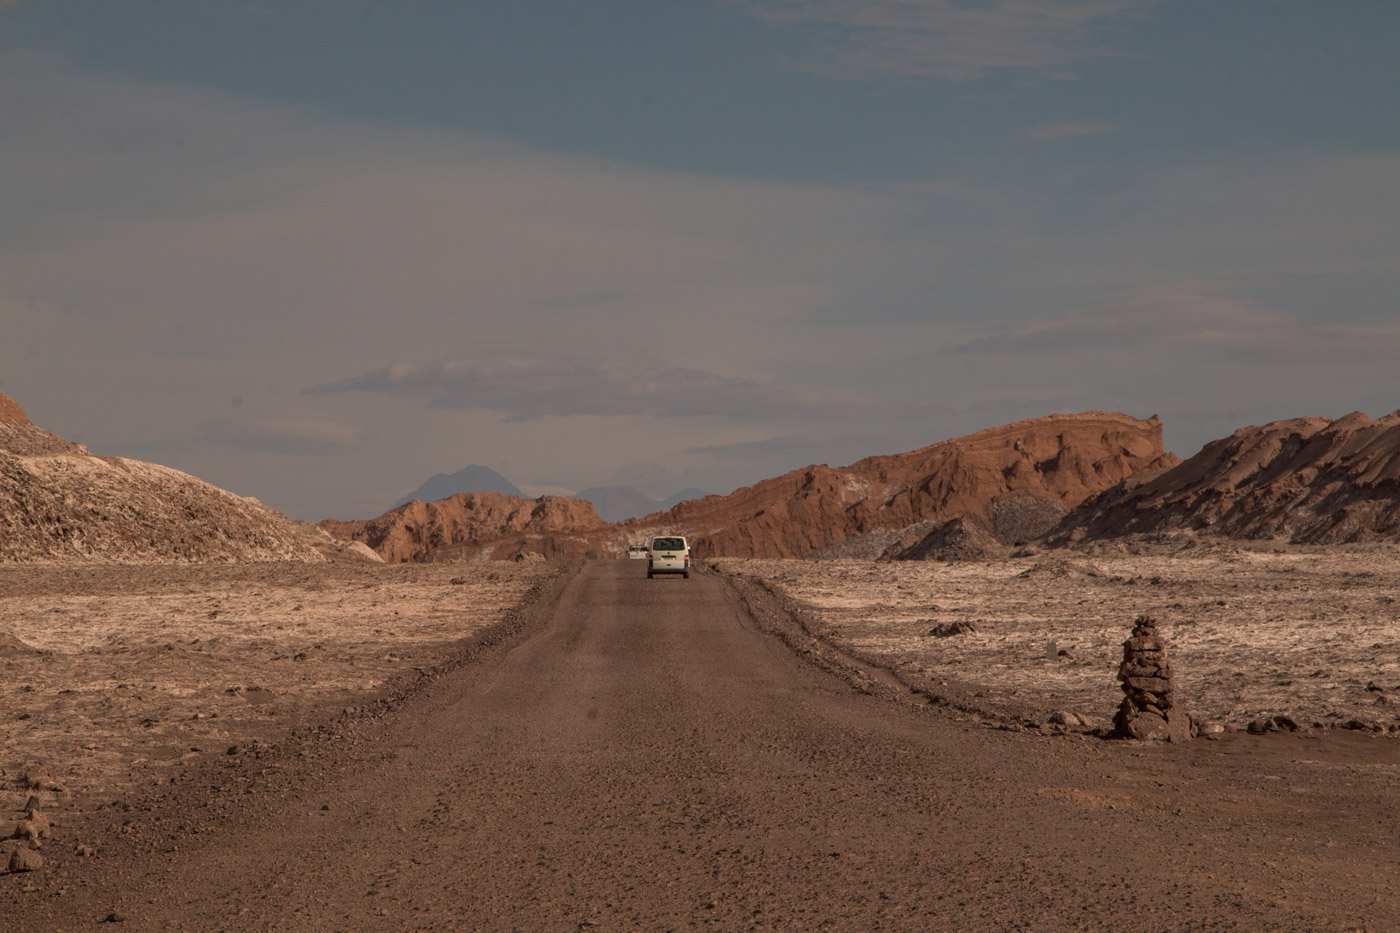 Driving through the Atacama desert